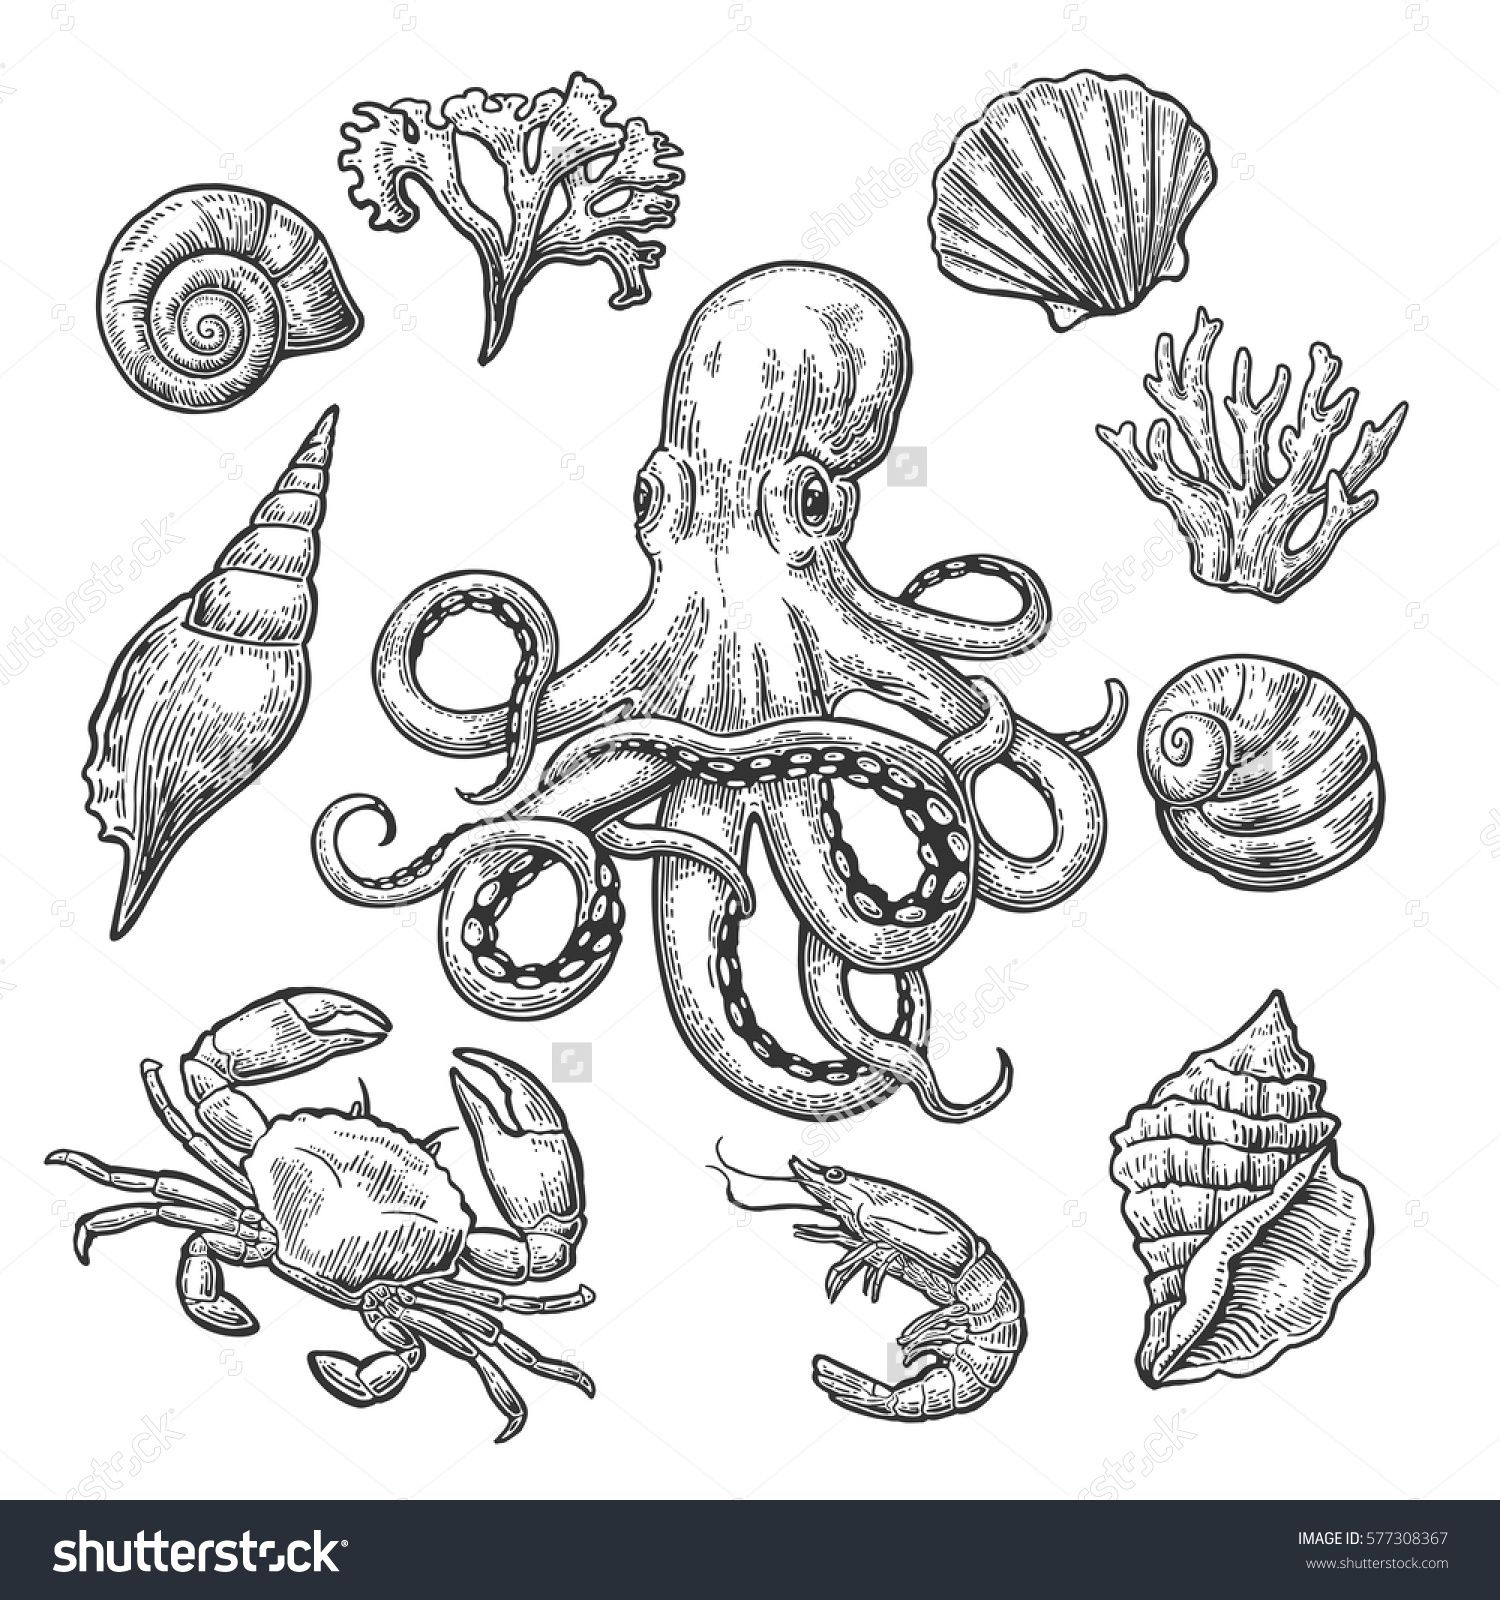 Set sea shell, coral, crab, shrimp and octopus. Vector black engraving vintage illustrations. Isolated on white background.